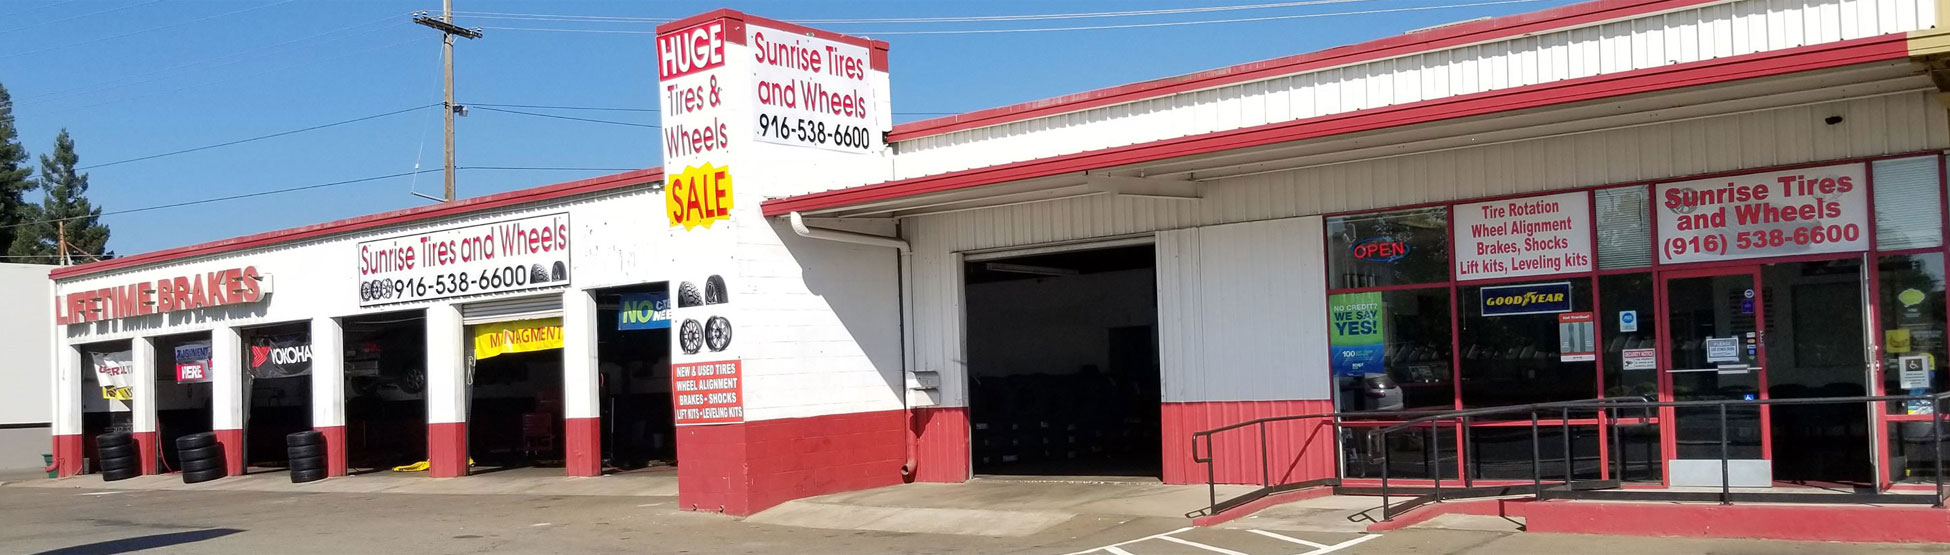 Tire Places Open Today >> Tires Wheels Lift Kits In Gold River Ca Sunrise Tires